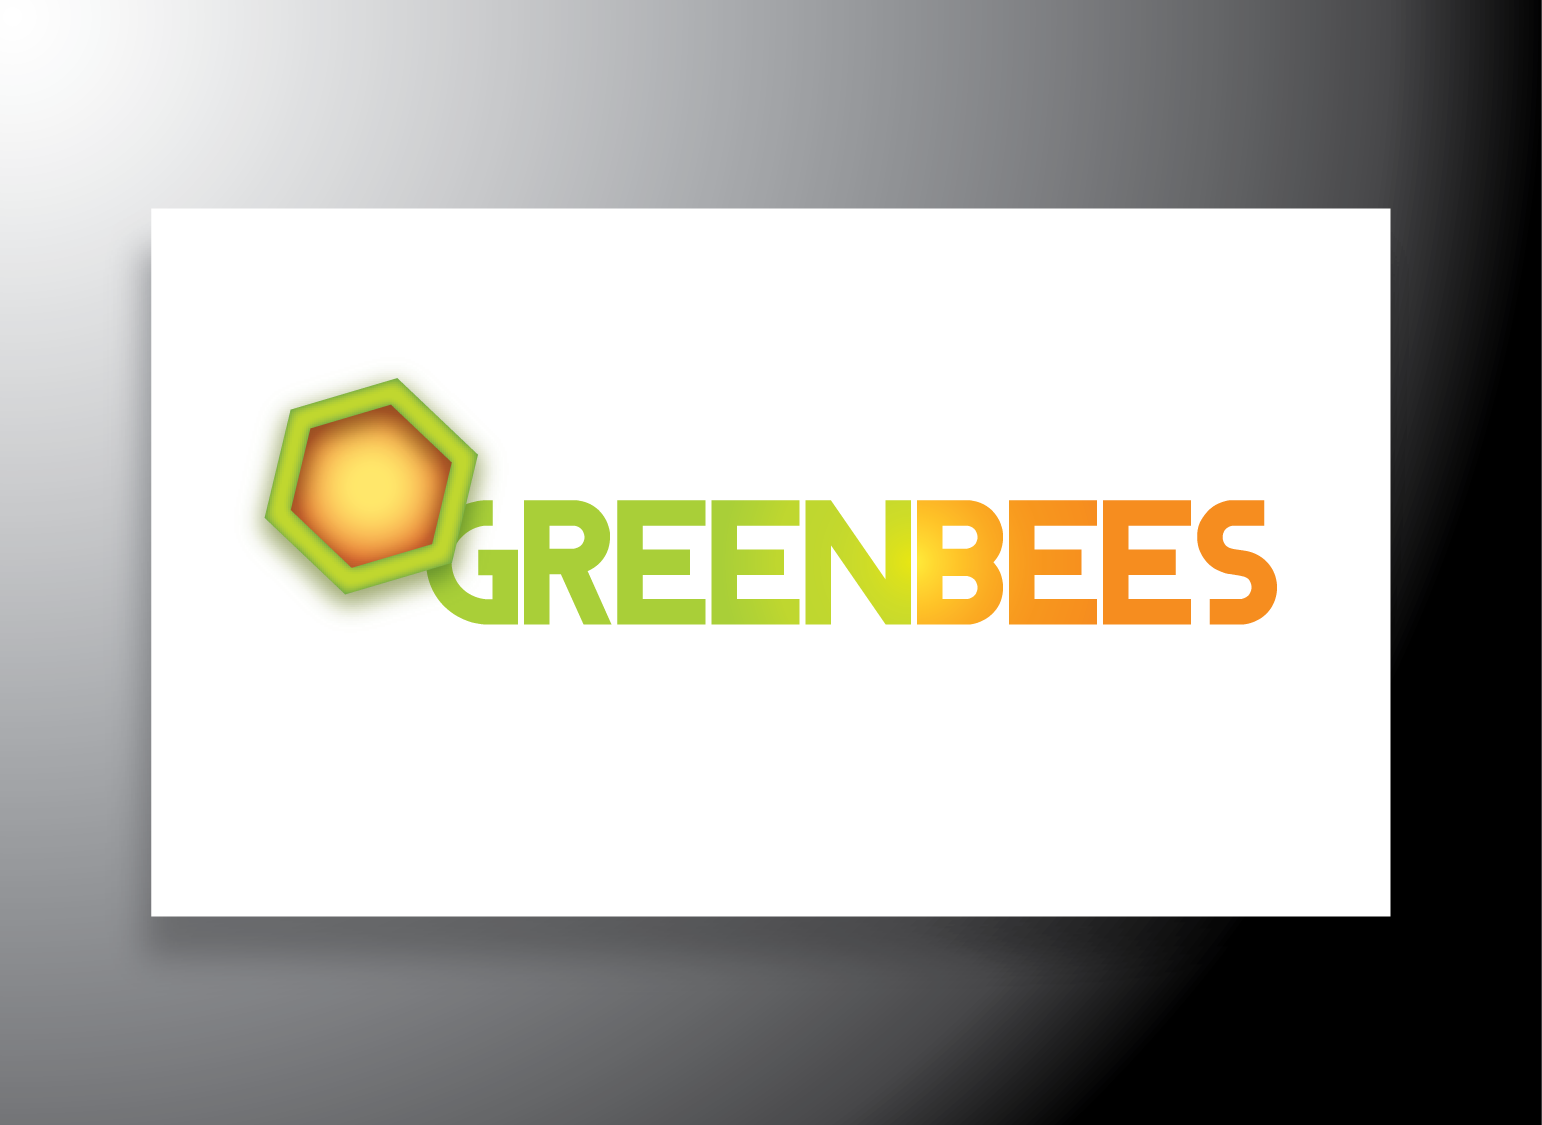 Logo Design by Teresa Abney - Entry No. 162 in the Logo Design Contest Greenbees Logo Design.